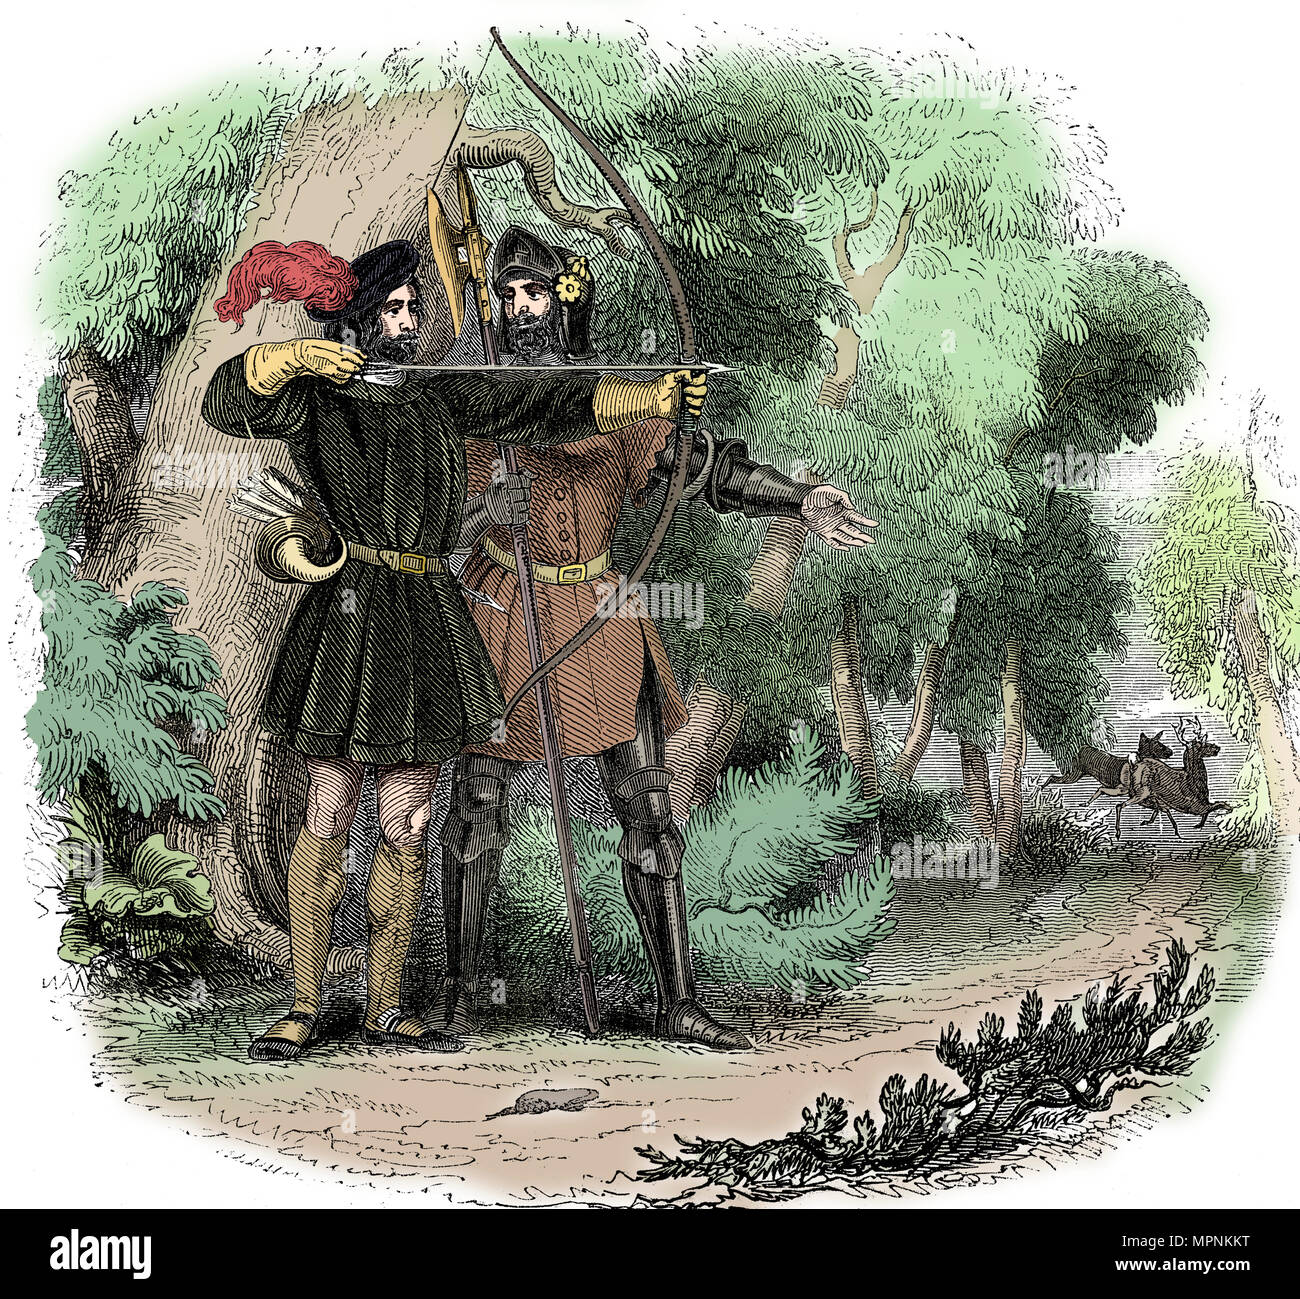 Robin Hood, legendary English folk hero and outlaw and champion of the poor, early 19th century. Artist: Unknown. - Stock Image